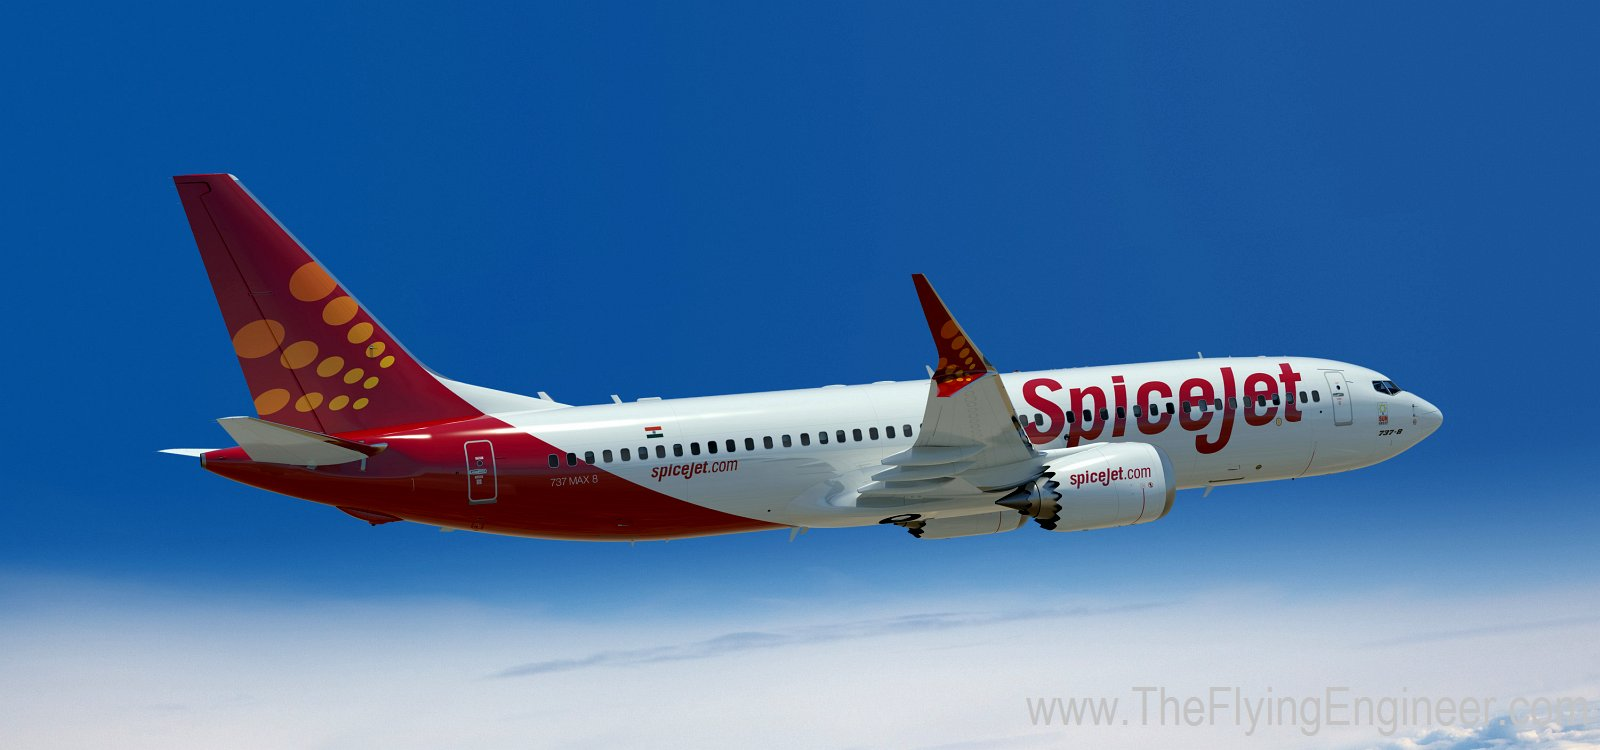 spice jet case study The origin of spicejet dates back to 1984 when it was incorporated as genius leasing finance and investment company ltd  case study pack  case details case .